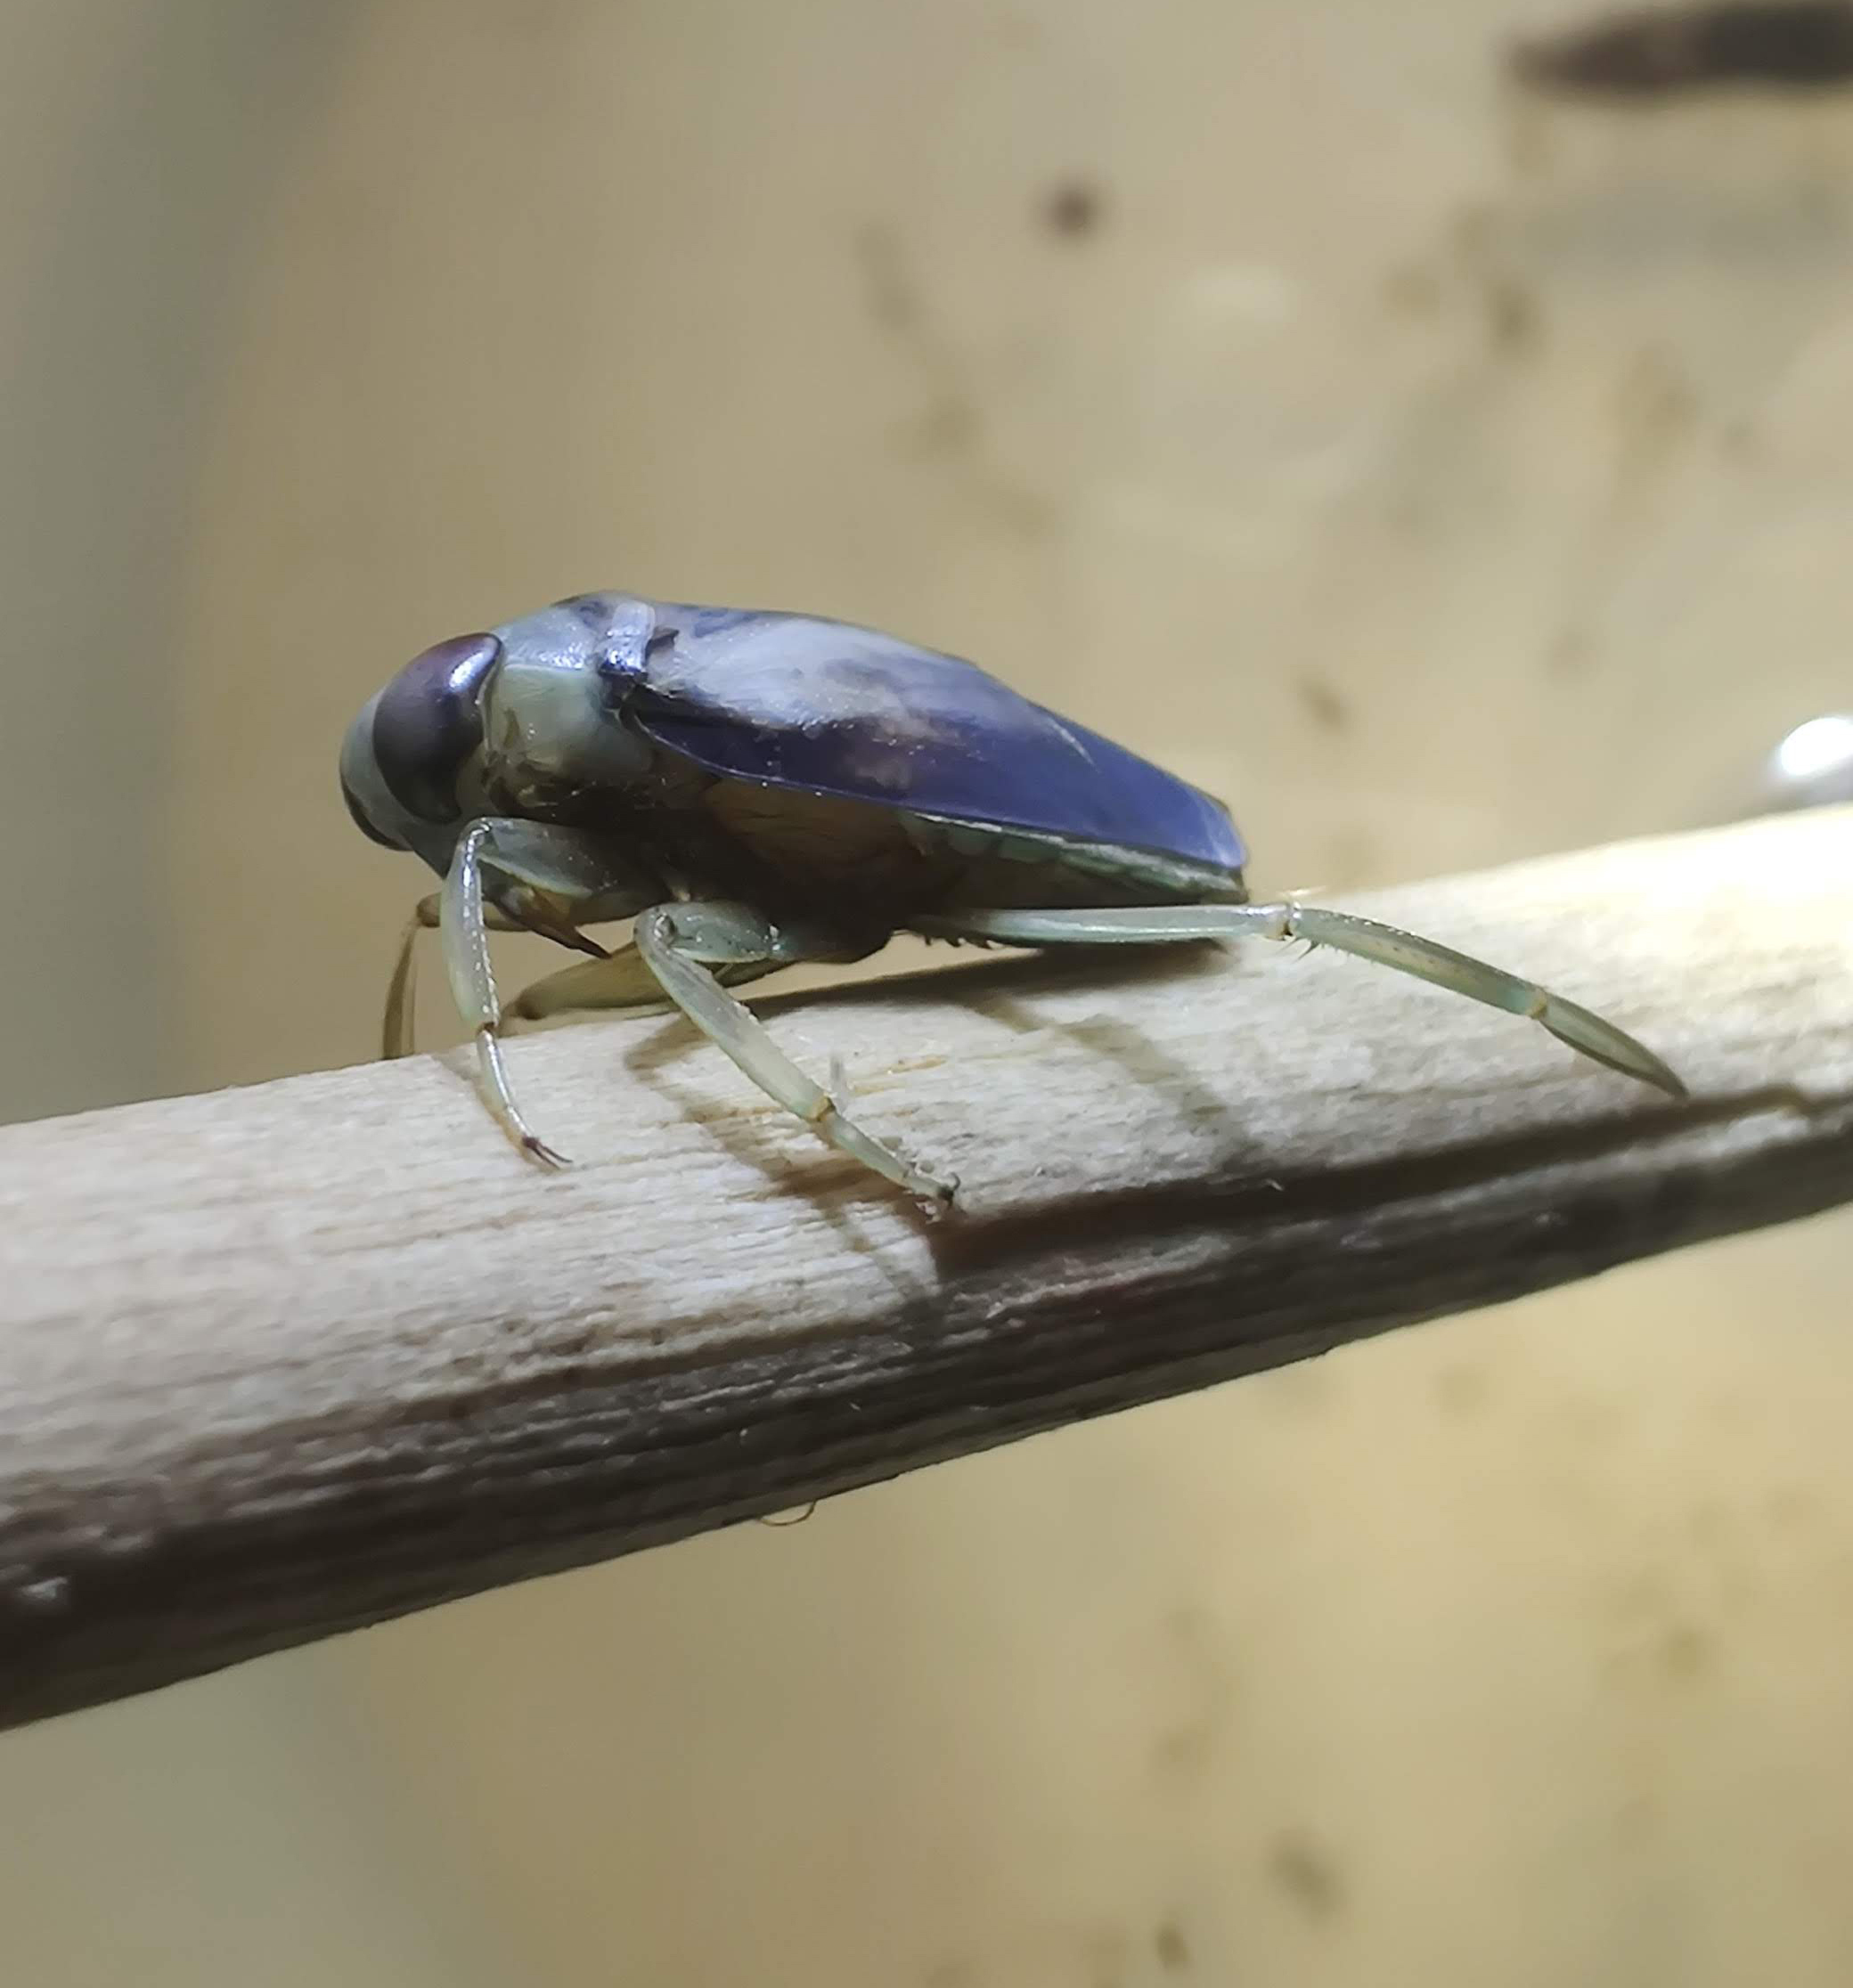 A blue insect with transparent legs perched on a light brown branch.